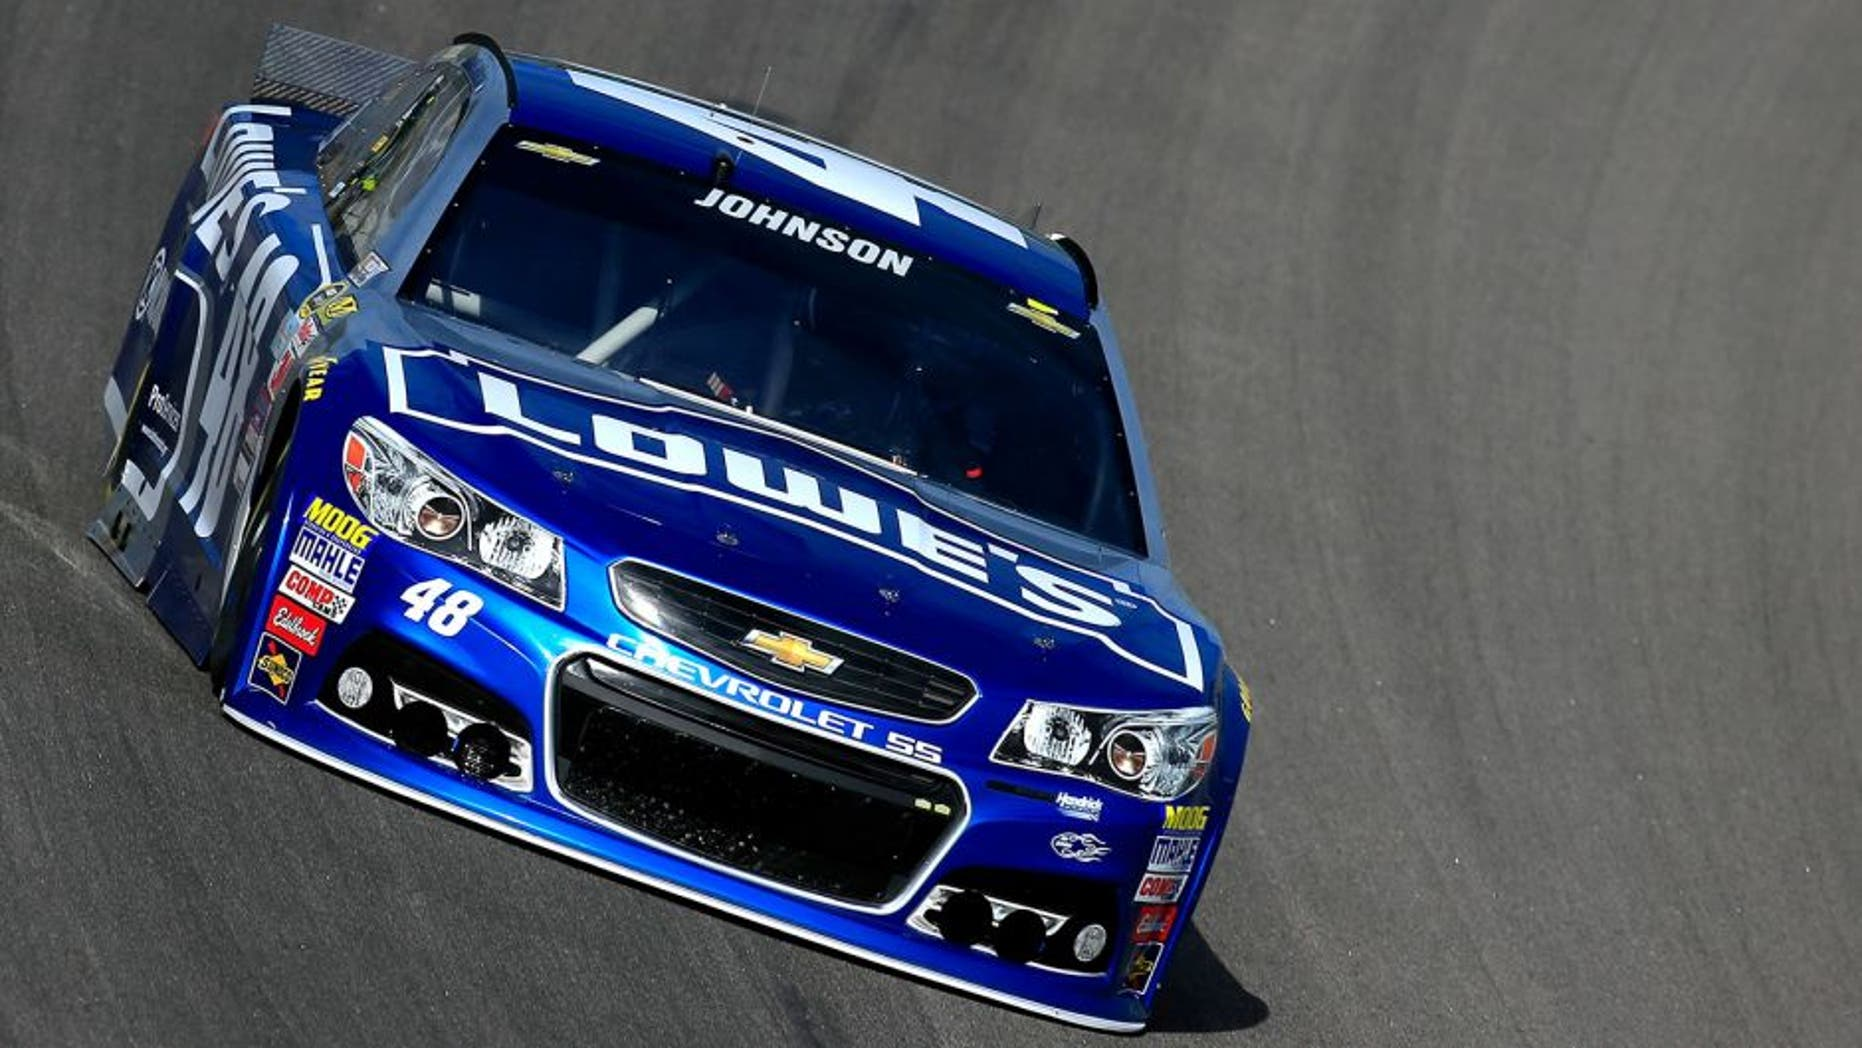 KANSAS CITY, KS - OCTOBER 17: Jimmie Johnson, driver of the #48 Lowe's Chevrolet, practices for the NASCAR Sprint Cup Series Hollywood Casino 400 at Kansas Speedway on October 17, 2015 in Kansas City, Kansas. (Photo by Chris Trotman/NASCAR via Getty Images)